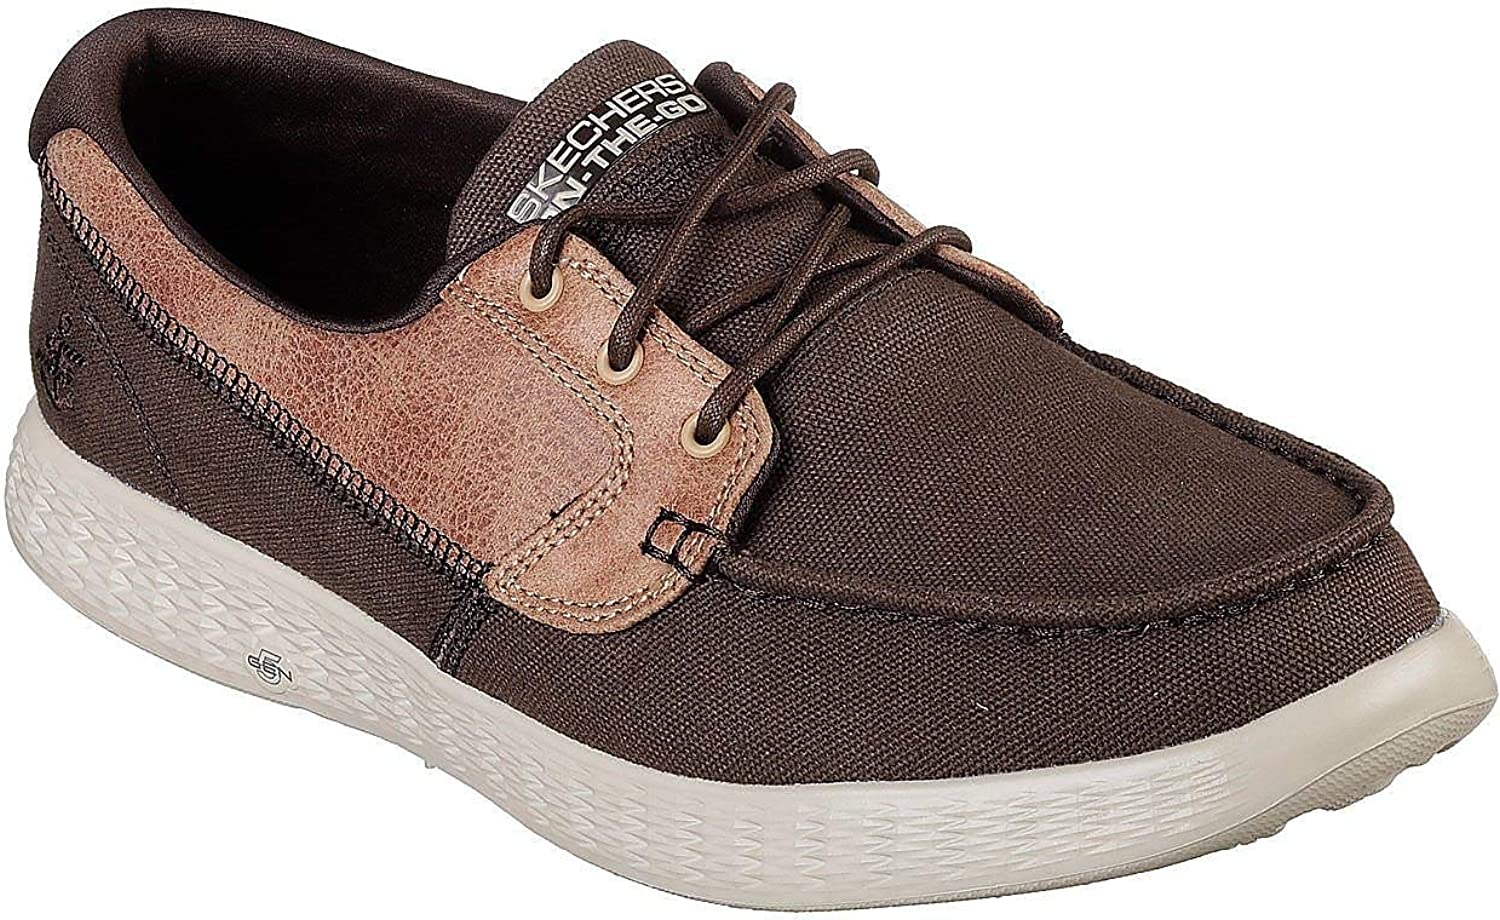 Men's Skechers Performance, On The Go Glide High Seas Lace up shoes